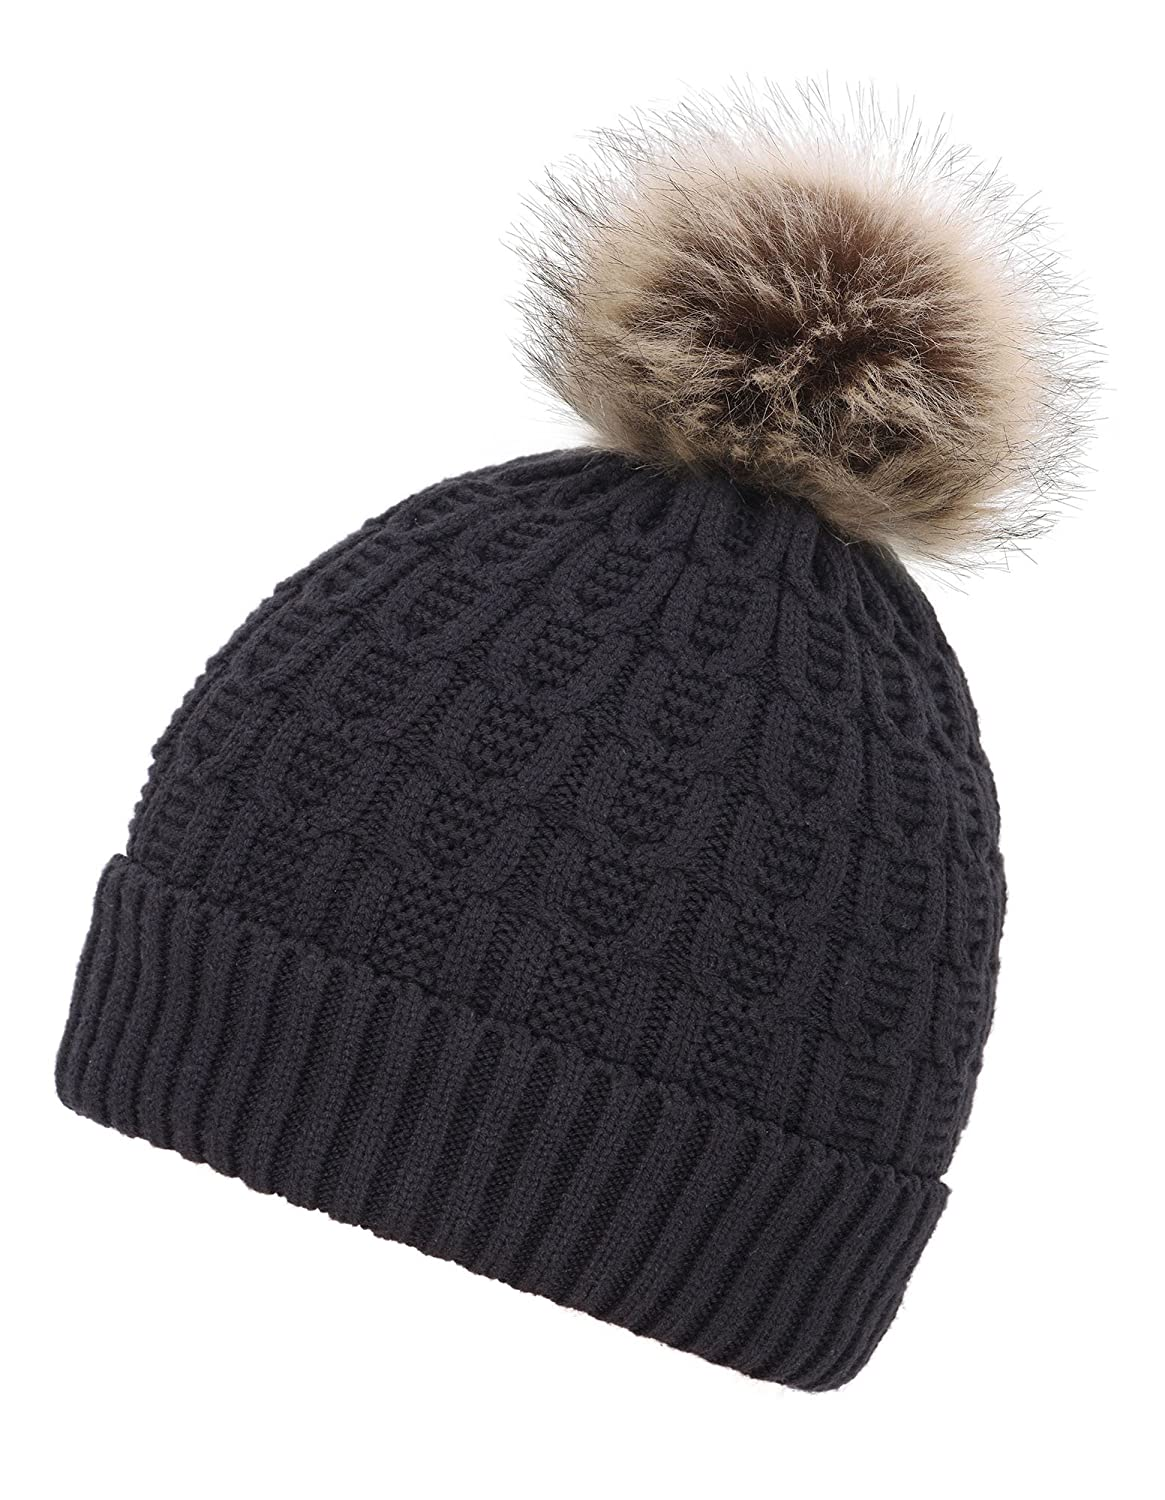 32440a8454a2a Womens Sherpa Lined Knit Beanie Hat Winter Knit Hat Cap